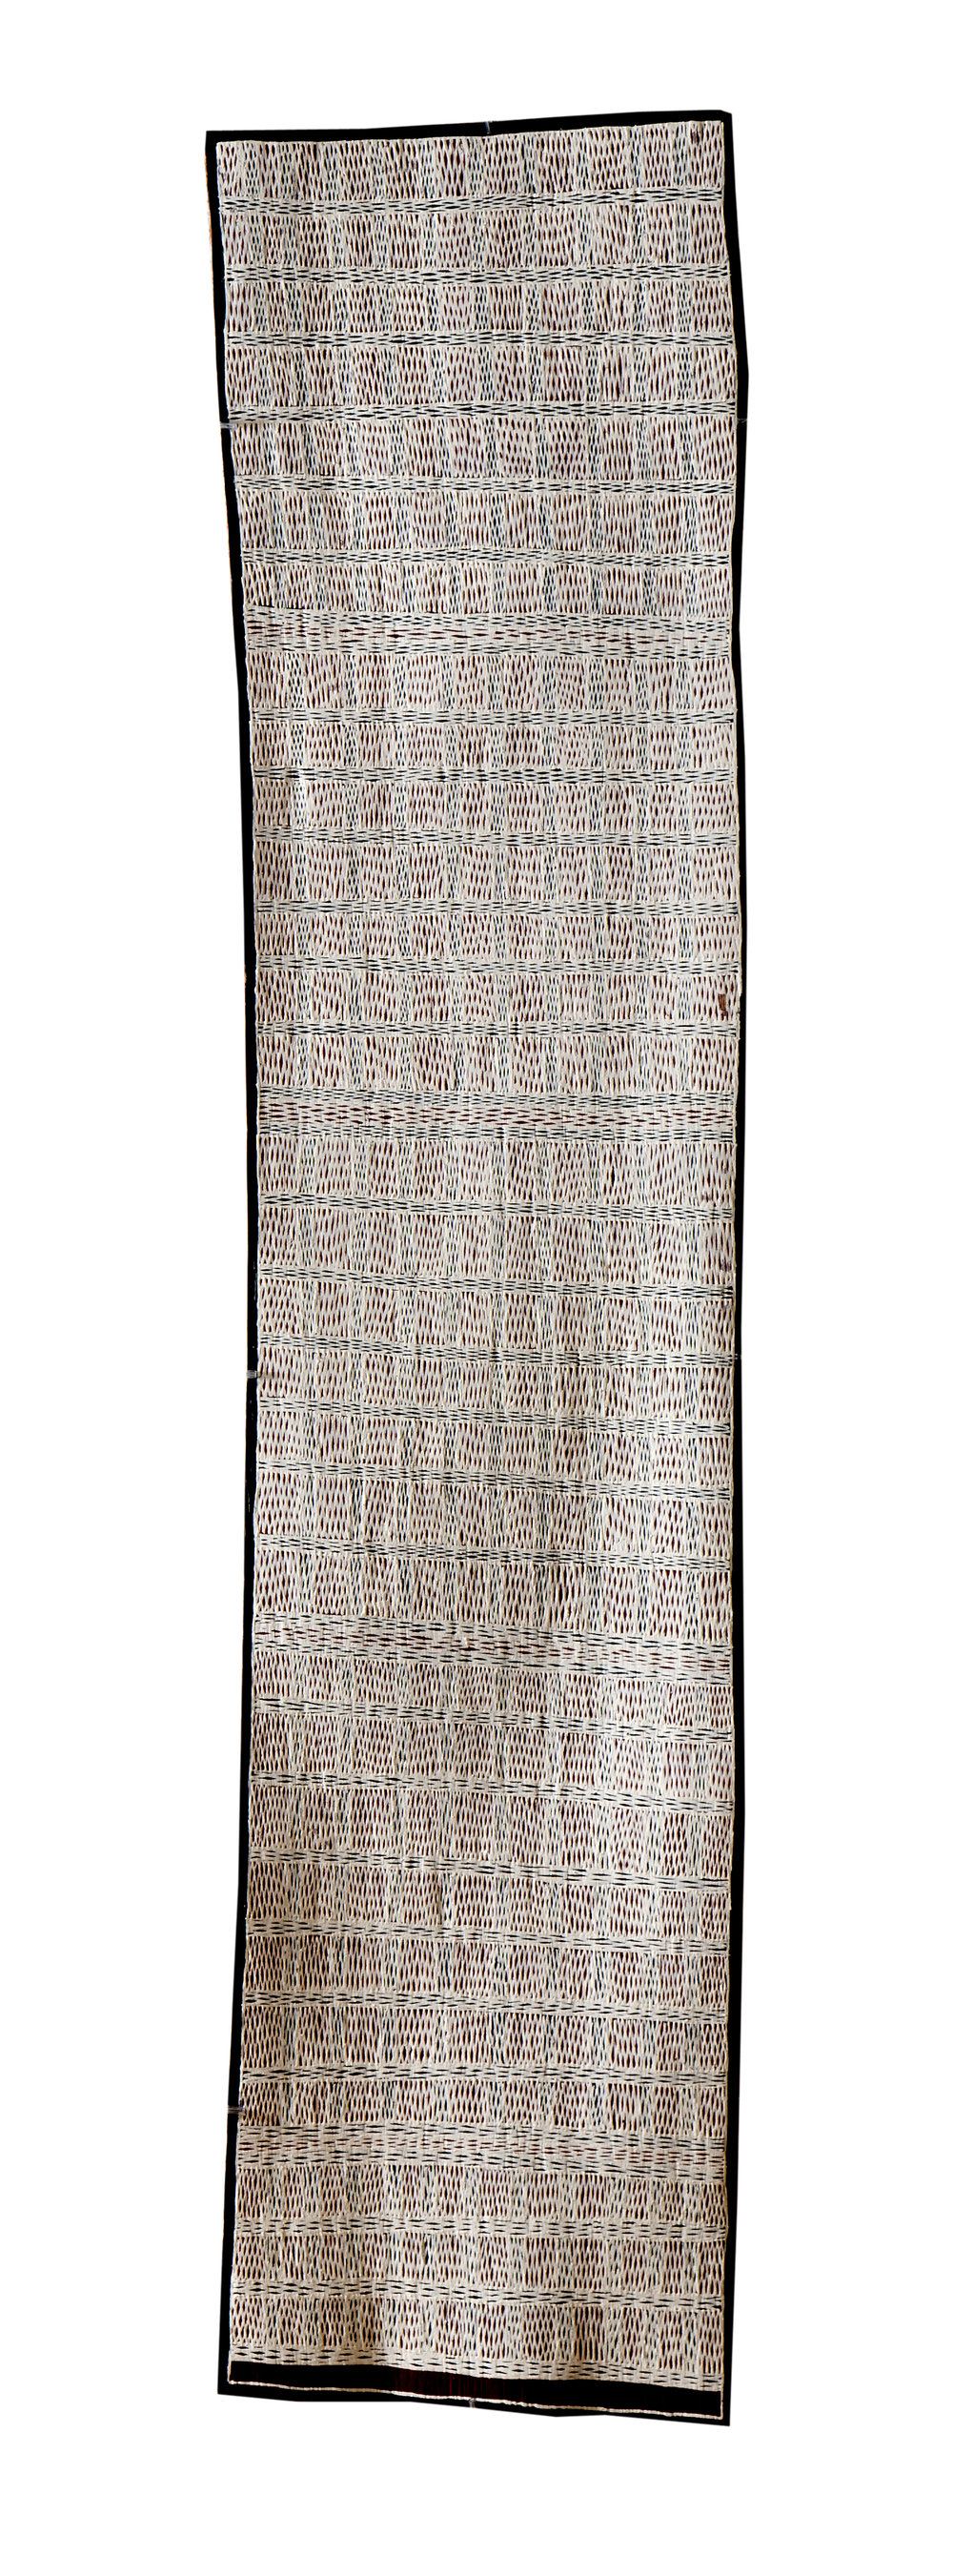 Marrnyula Munungurr  Untitled  Natural earth pigments on bark 36 x 160cm  Buku Larrnggay Mulka #4072P   EMAIL INQUIRY